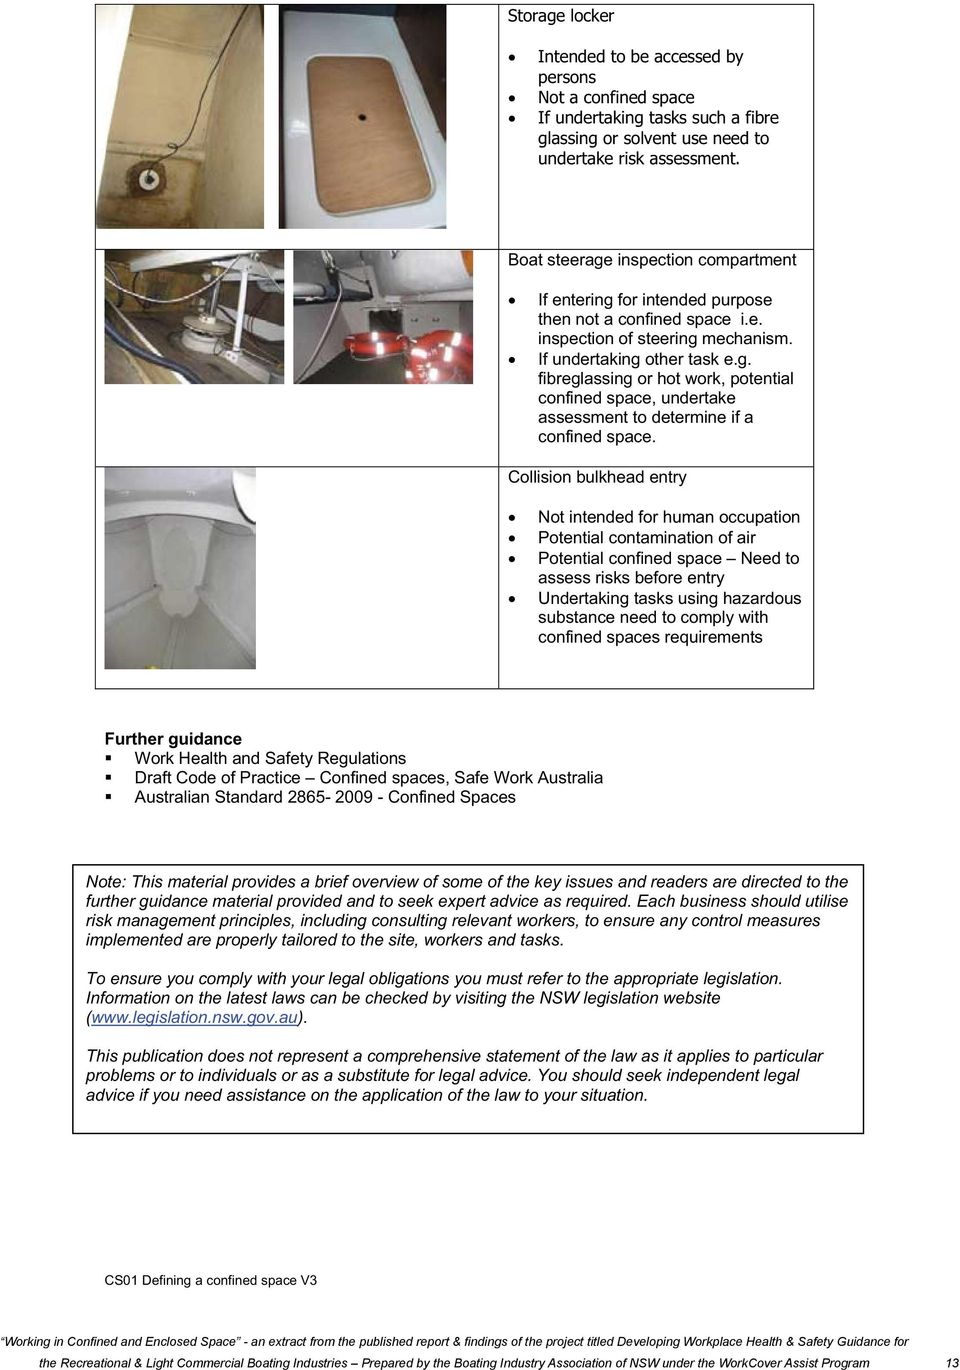 Collision bulkhead entry Not intended for human occupation Potential contamination of air Potential confined space Need to assess risks before entry Undertaking tasks using hazardous substance need